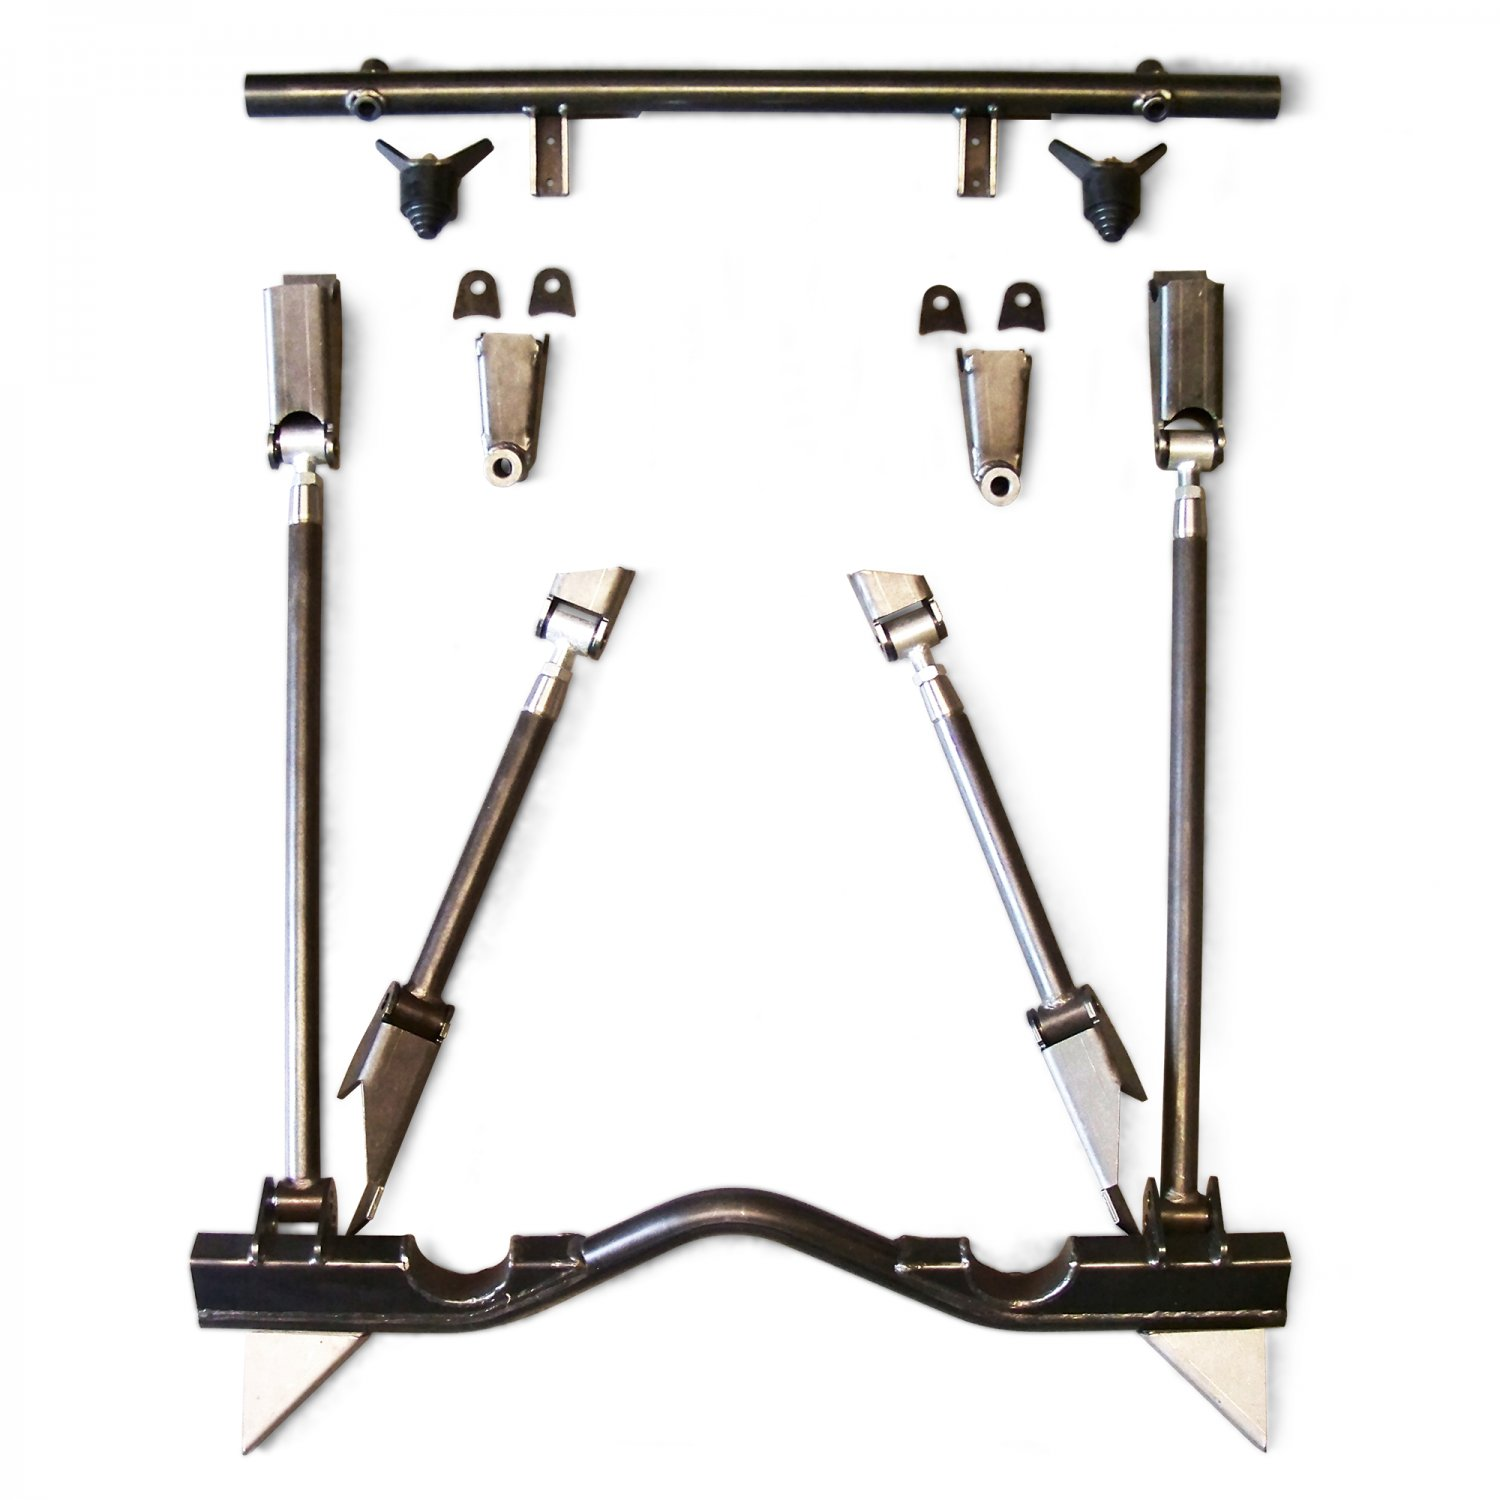 Details about 55-57 Chevy Tri-Five Triangulated 4-Link Bracket Only Kit  suspension front parts